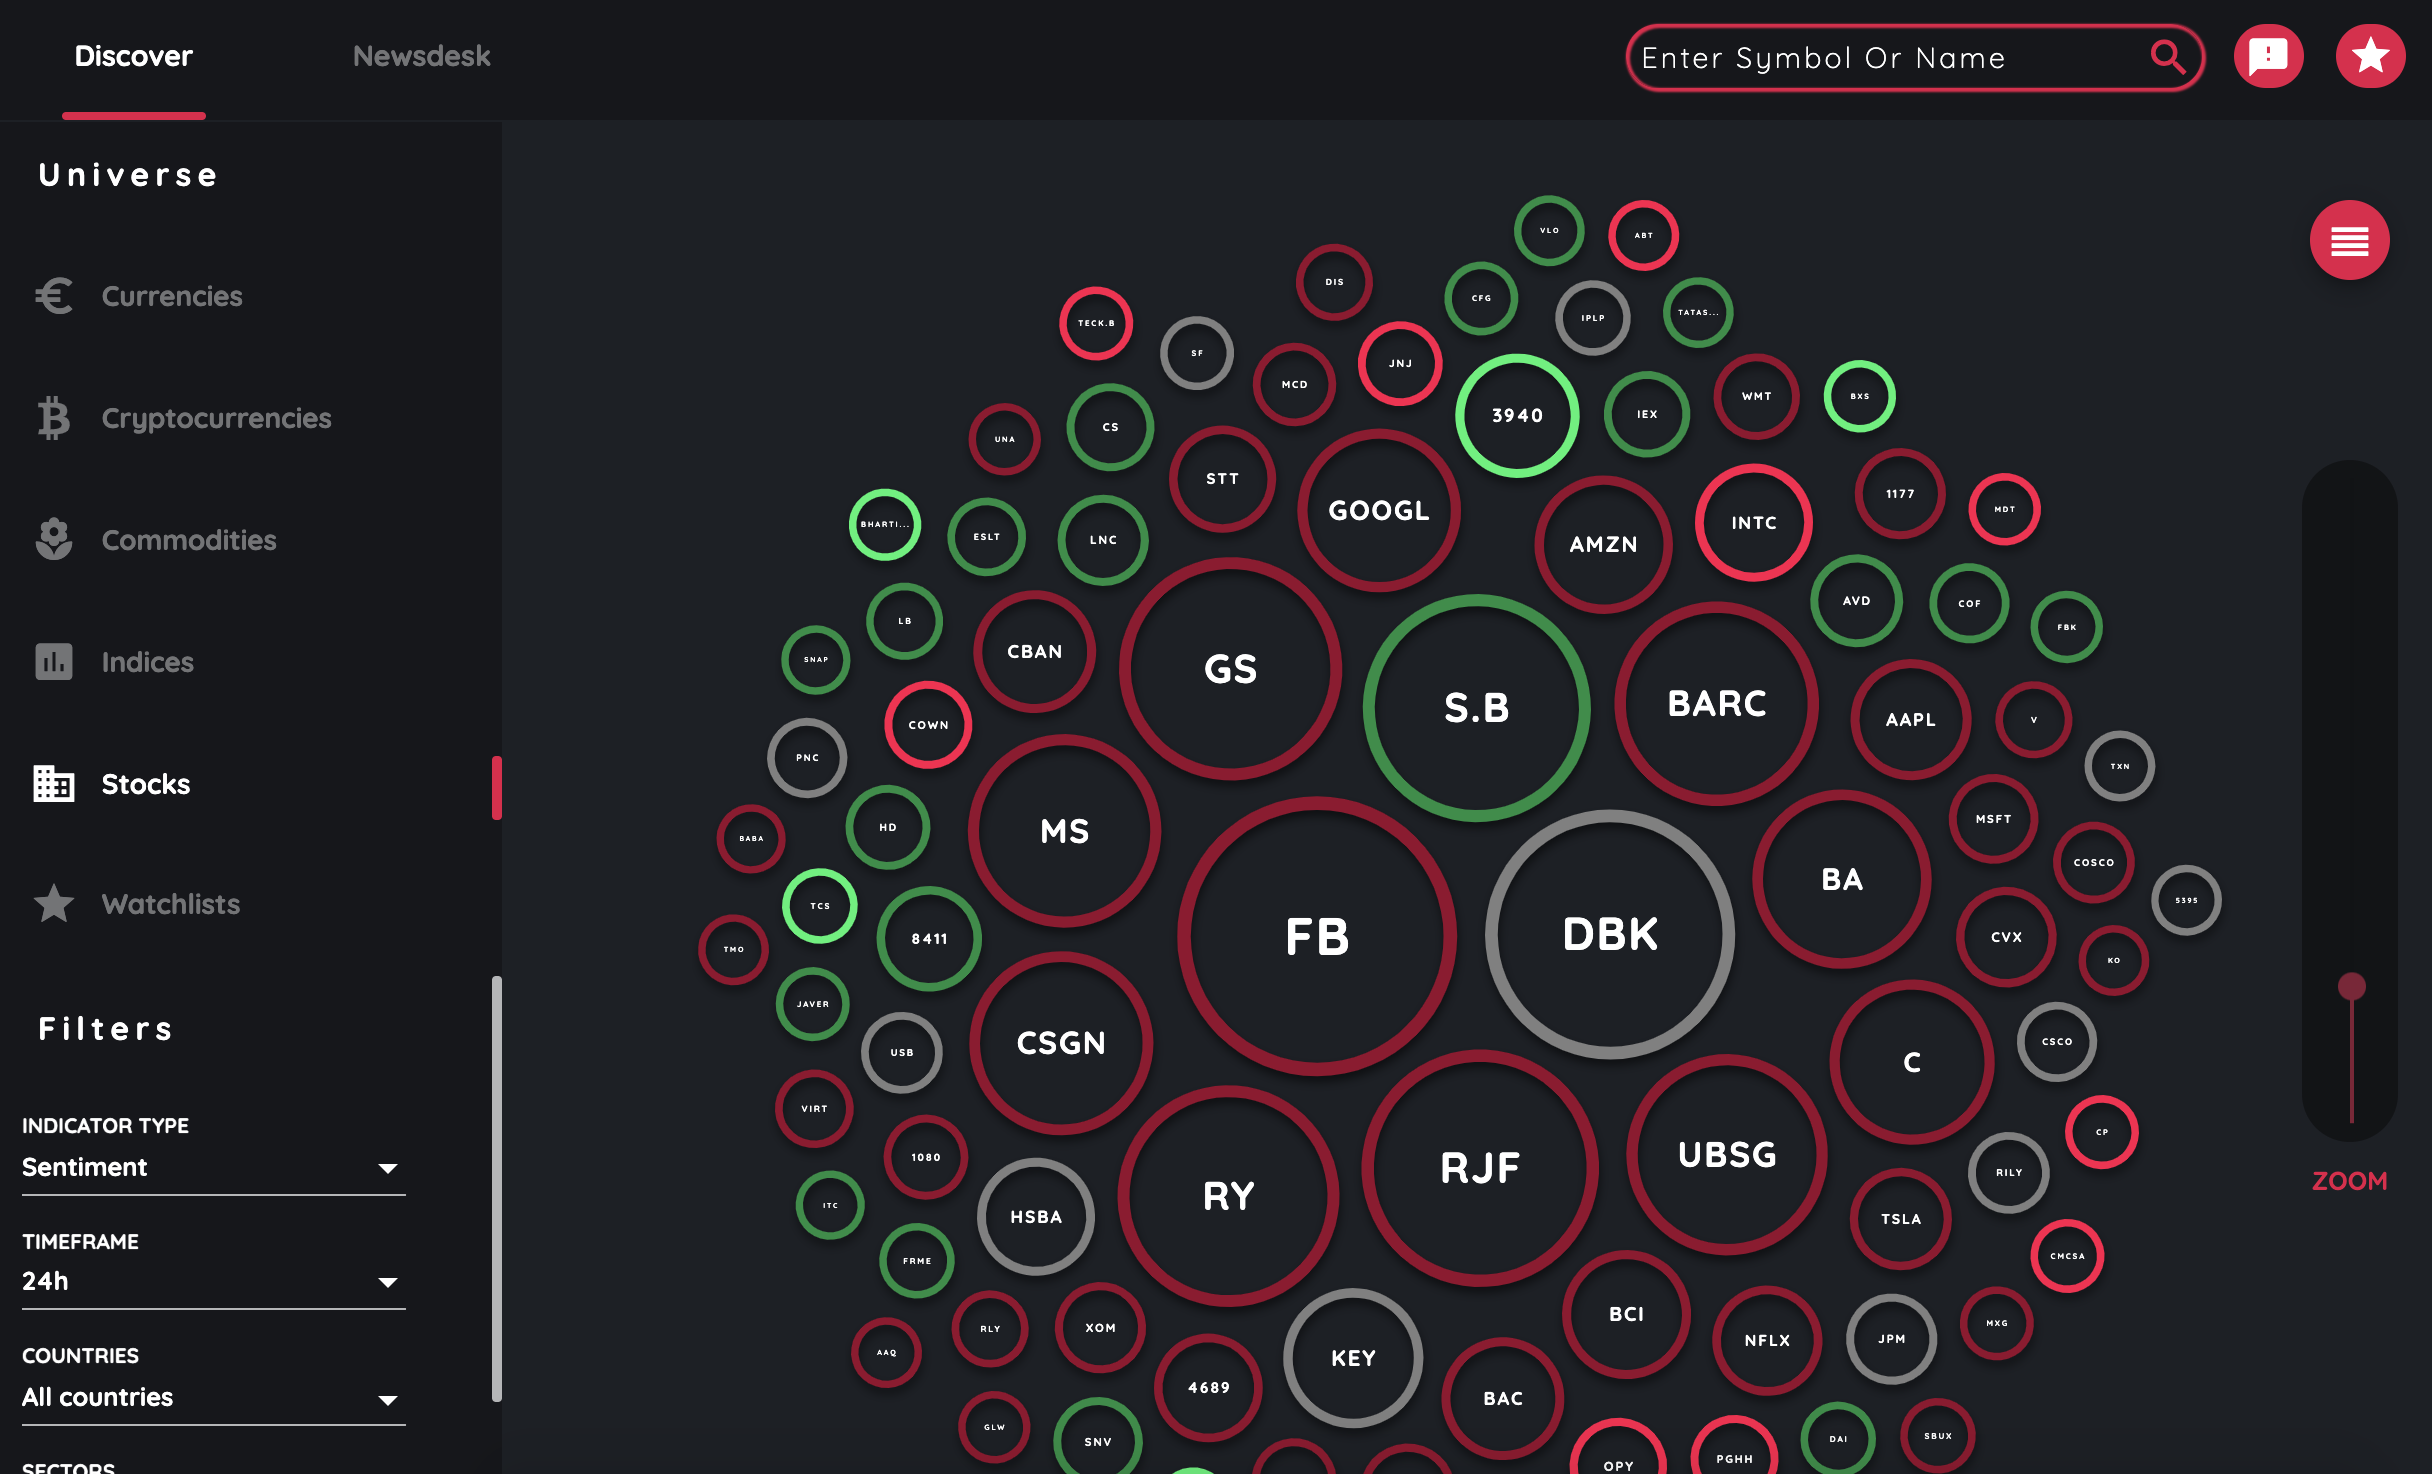 TC Market Buzz Mockup: Explore the overall sentiment of an instrument from Positive, Negative or Neutral